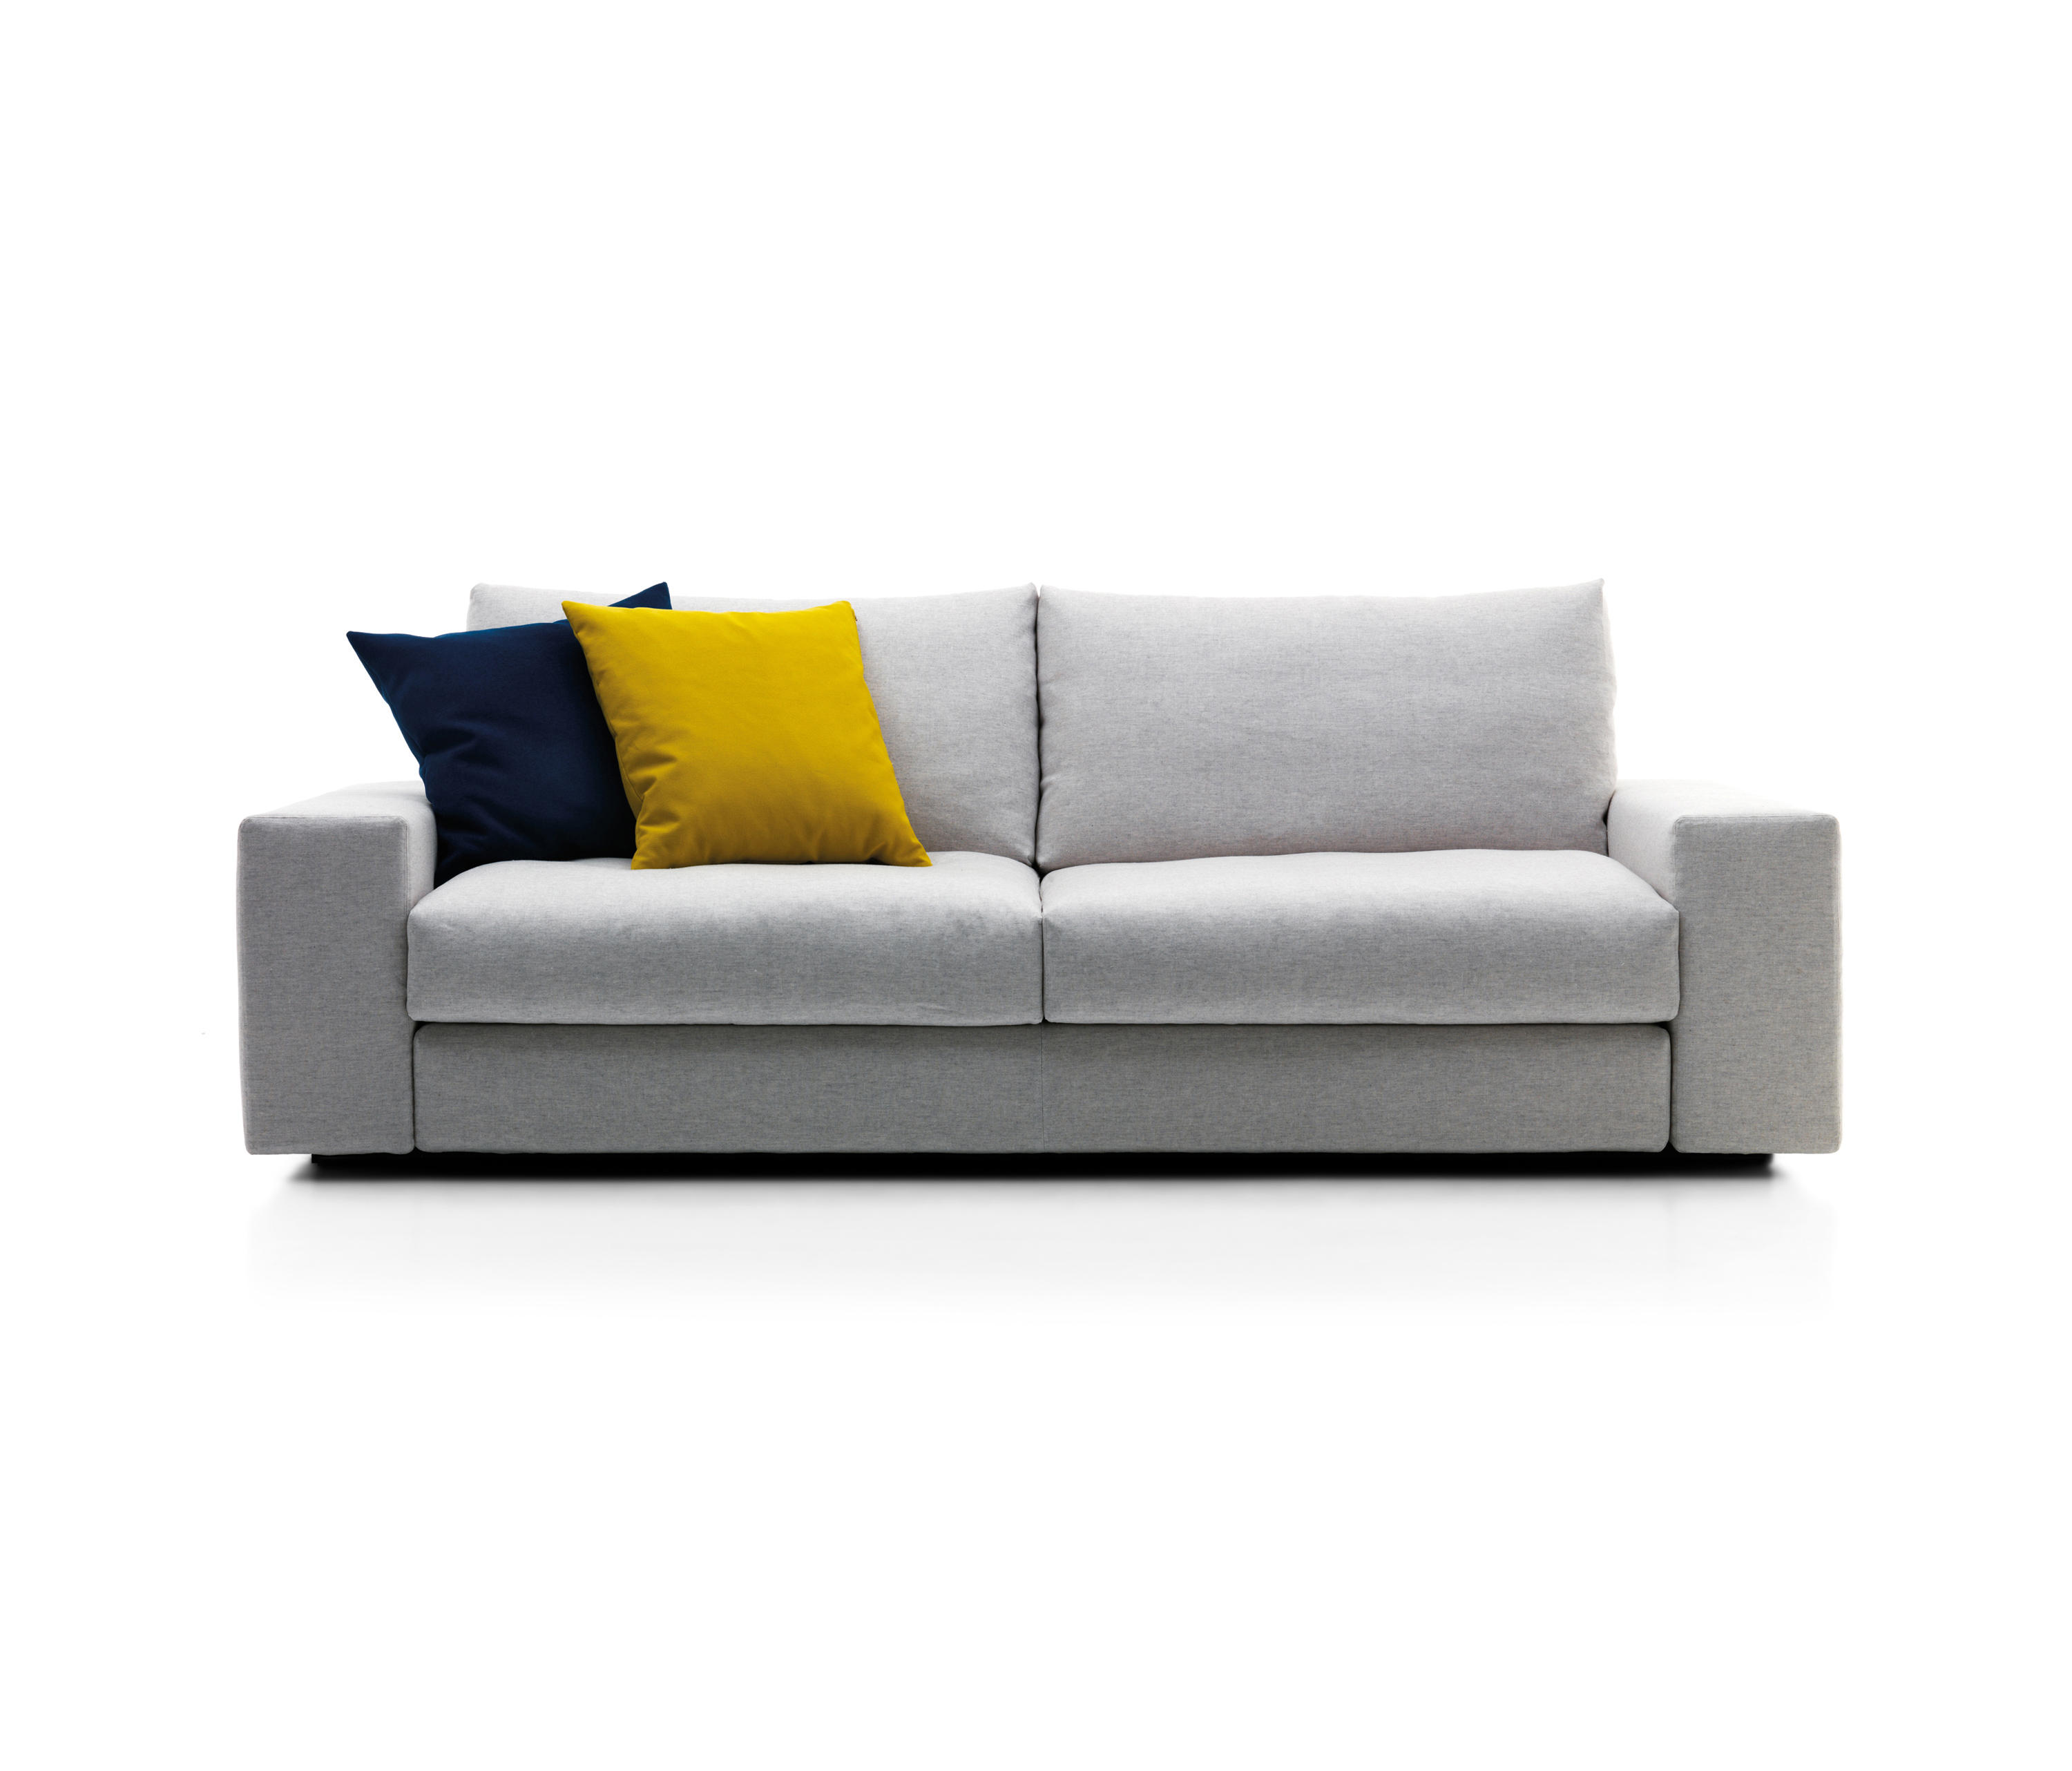 Square C | 2-seater sofa by Mussi Italy | Lounge sofas ...